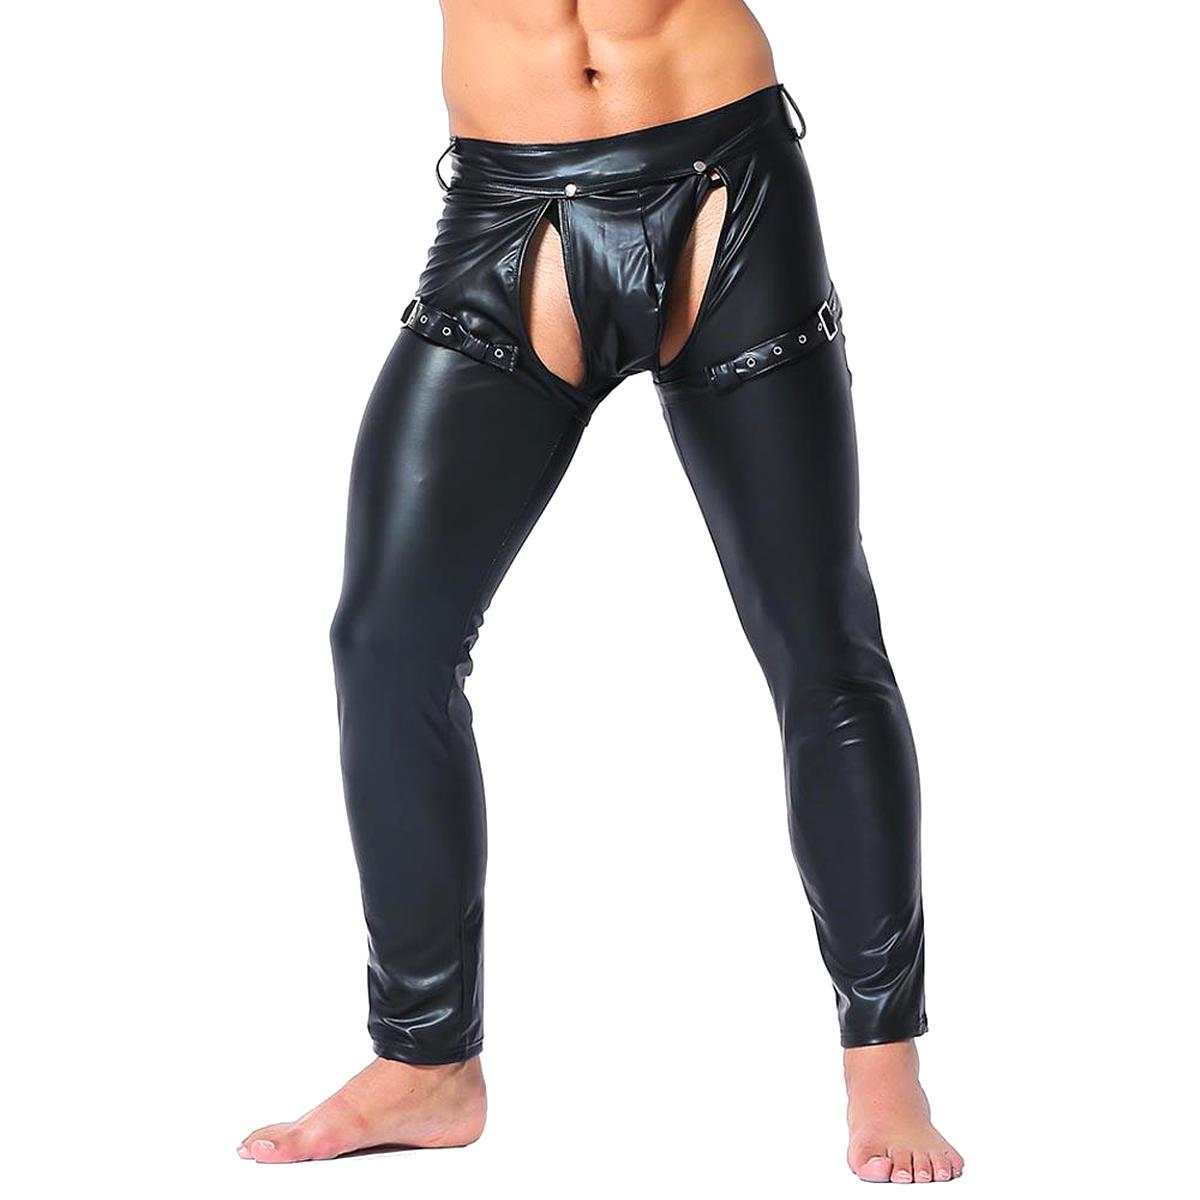 pantalon latex homme d'occasion